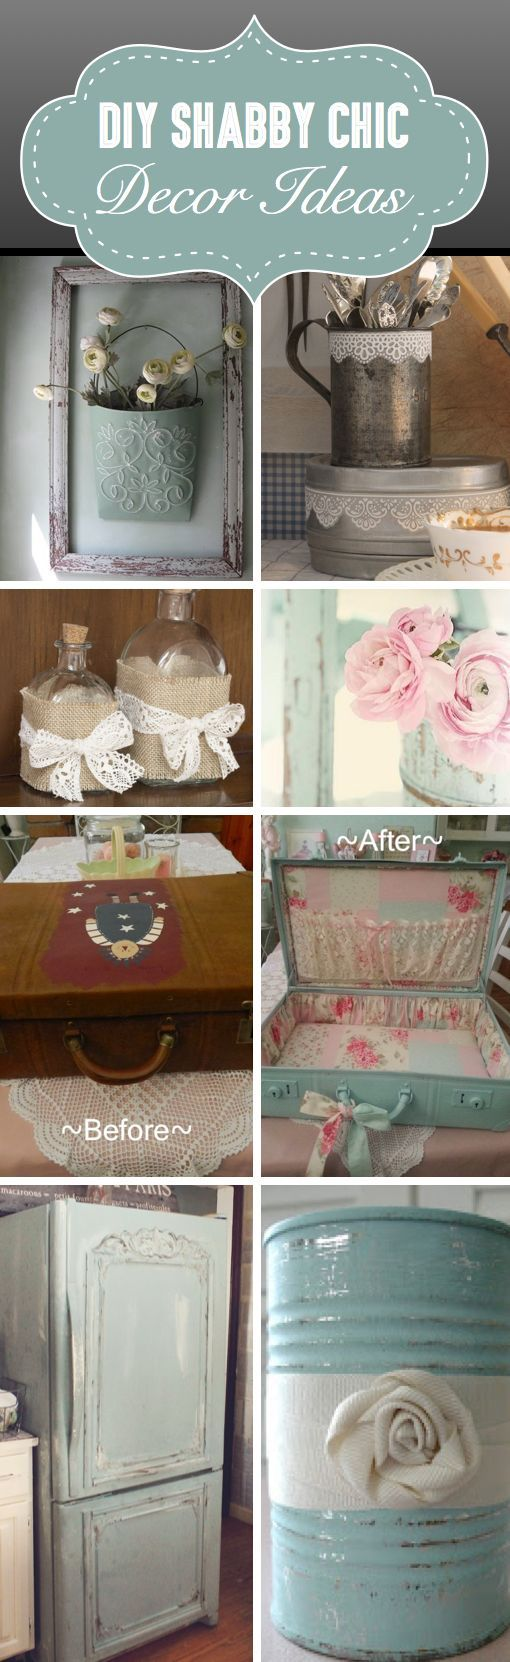 25 diy shabby chic decor ideas for women who love the for Diy shabby chic bedroom